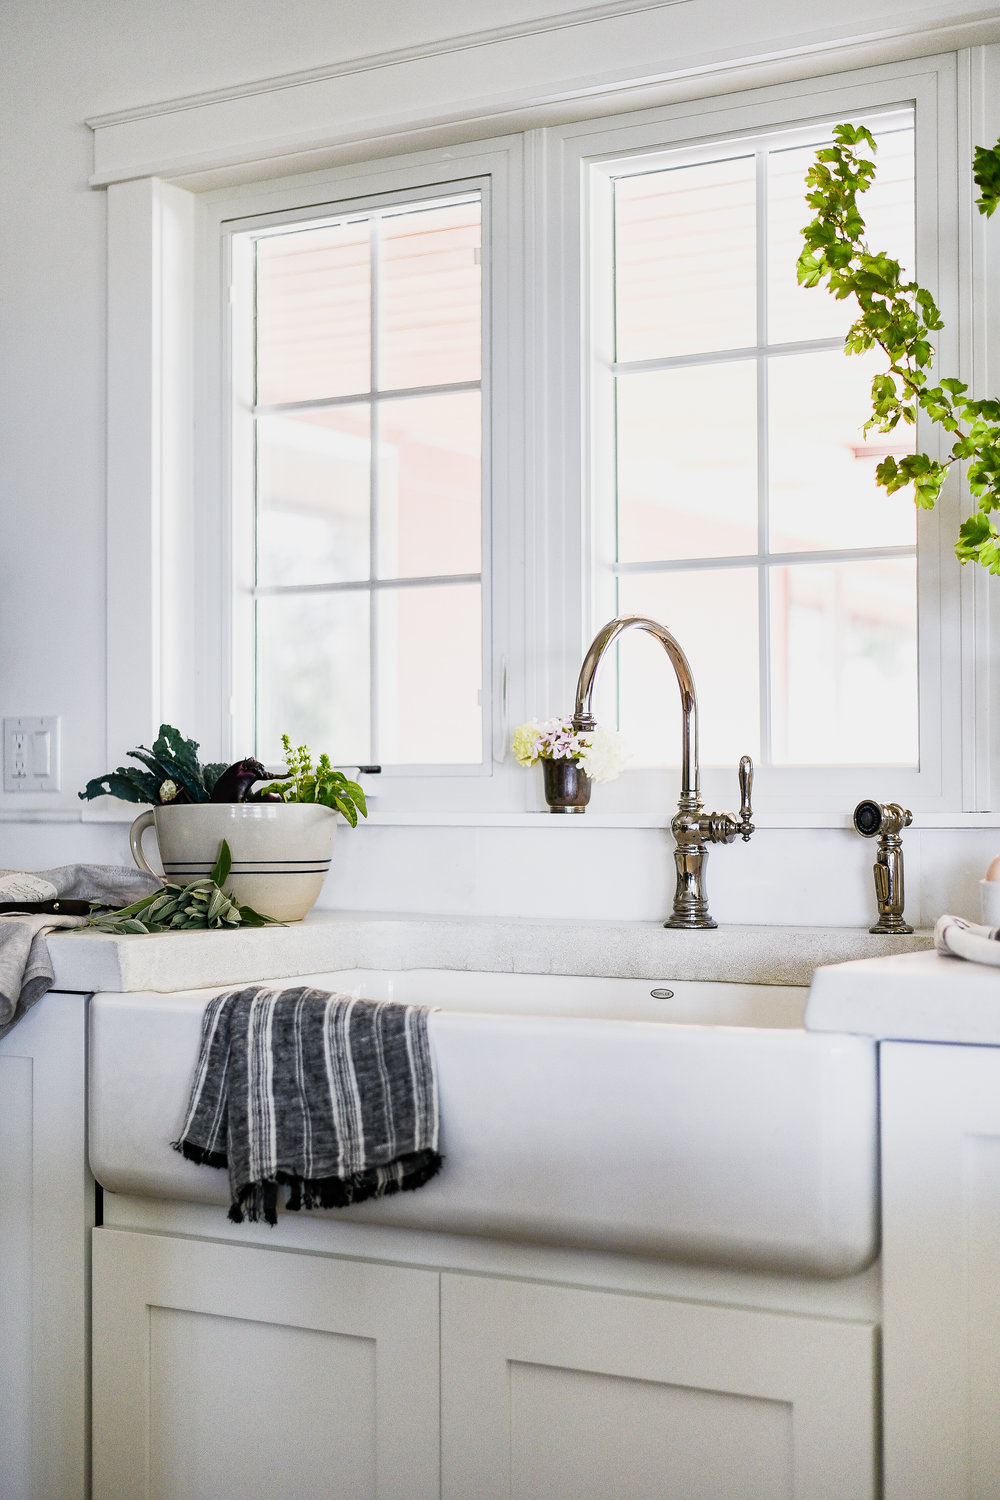 Farmhouse sink with antique faucet & concrete countertops | boxwoodavenue.com